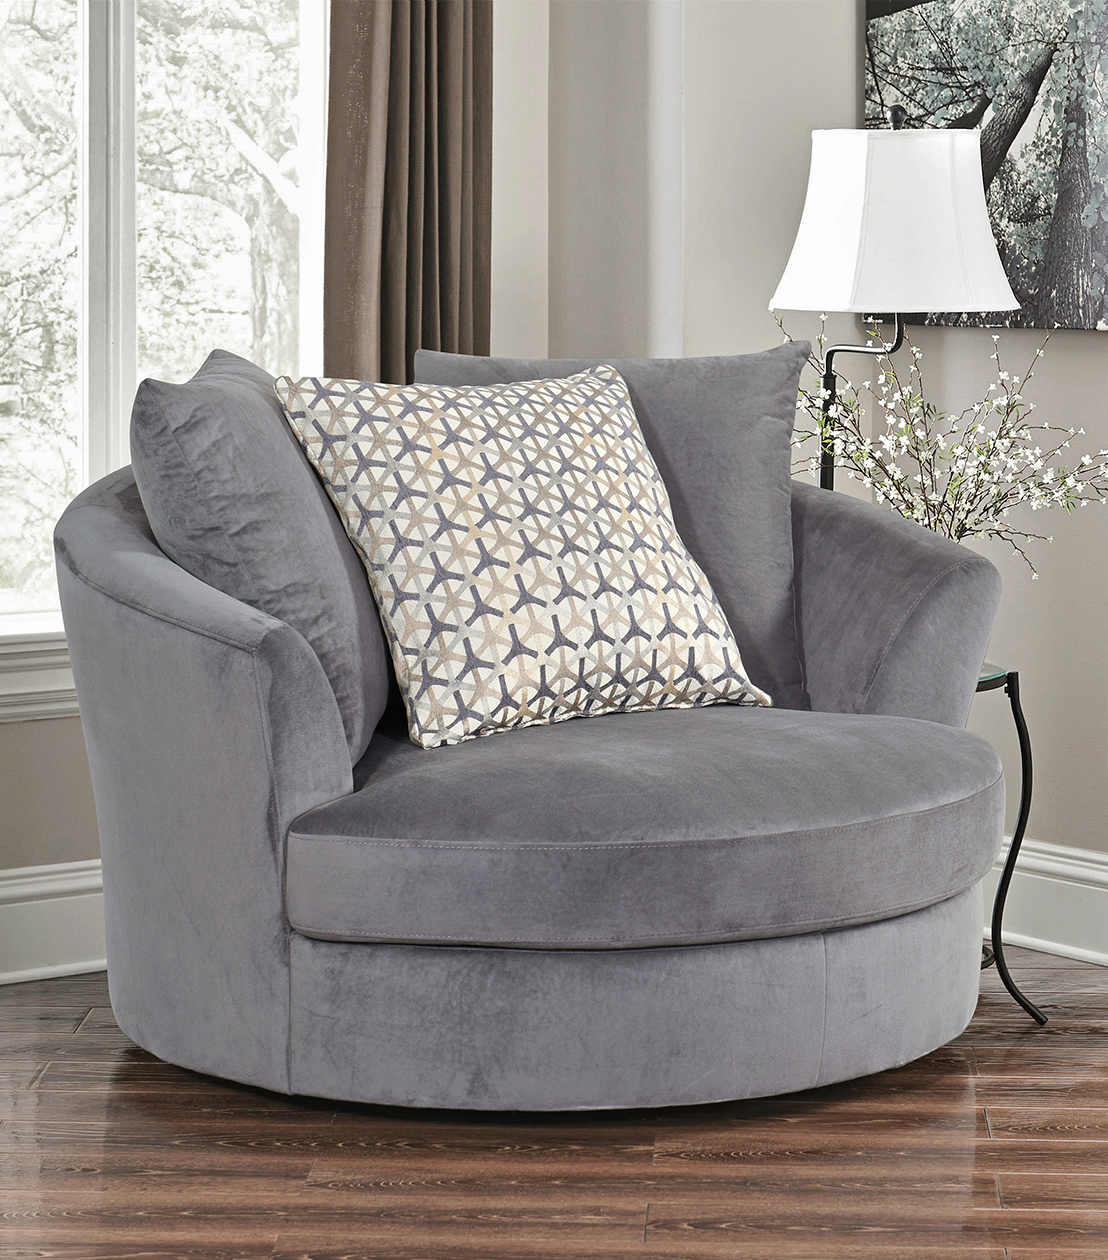 Chairs : Tanya Swivel Chair, Grey Regarding Grey Swivel Chairs (Image 1 of 20)